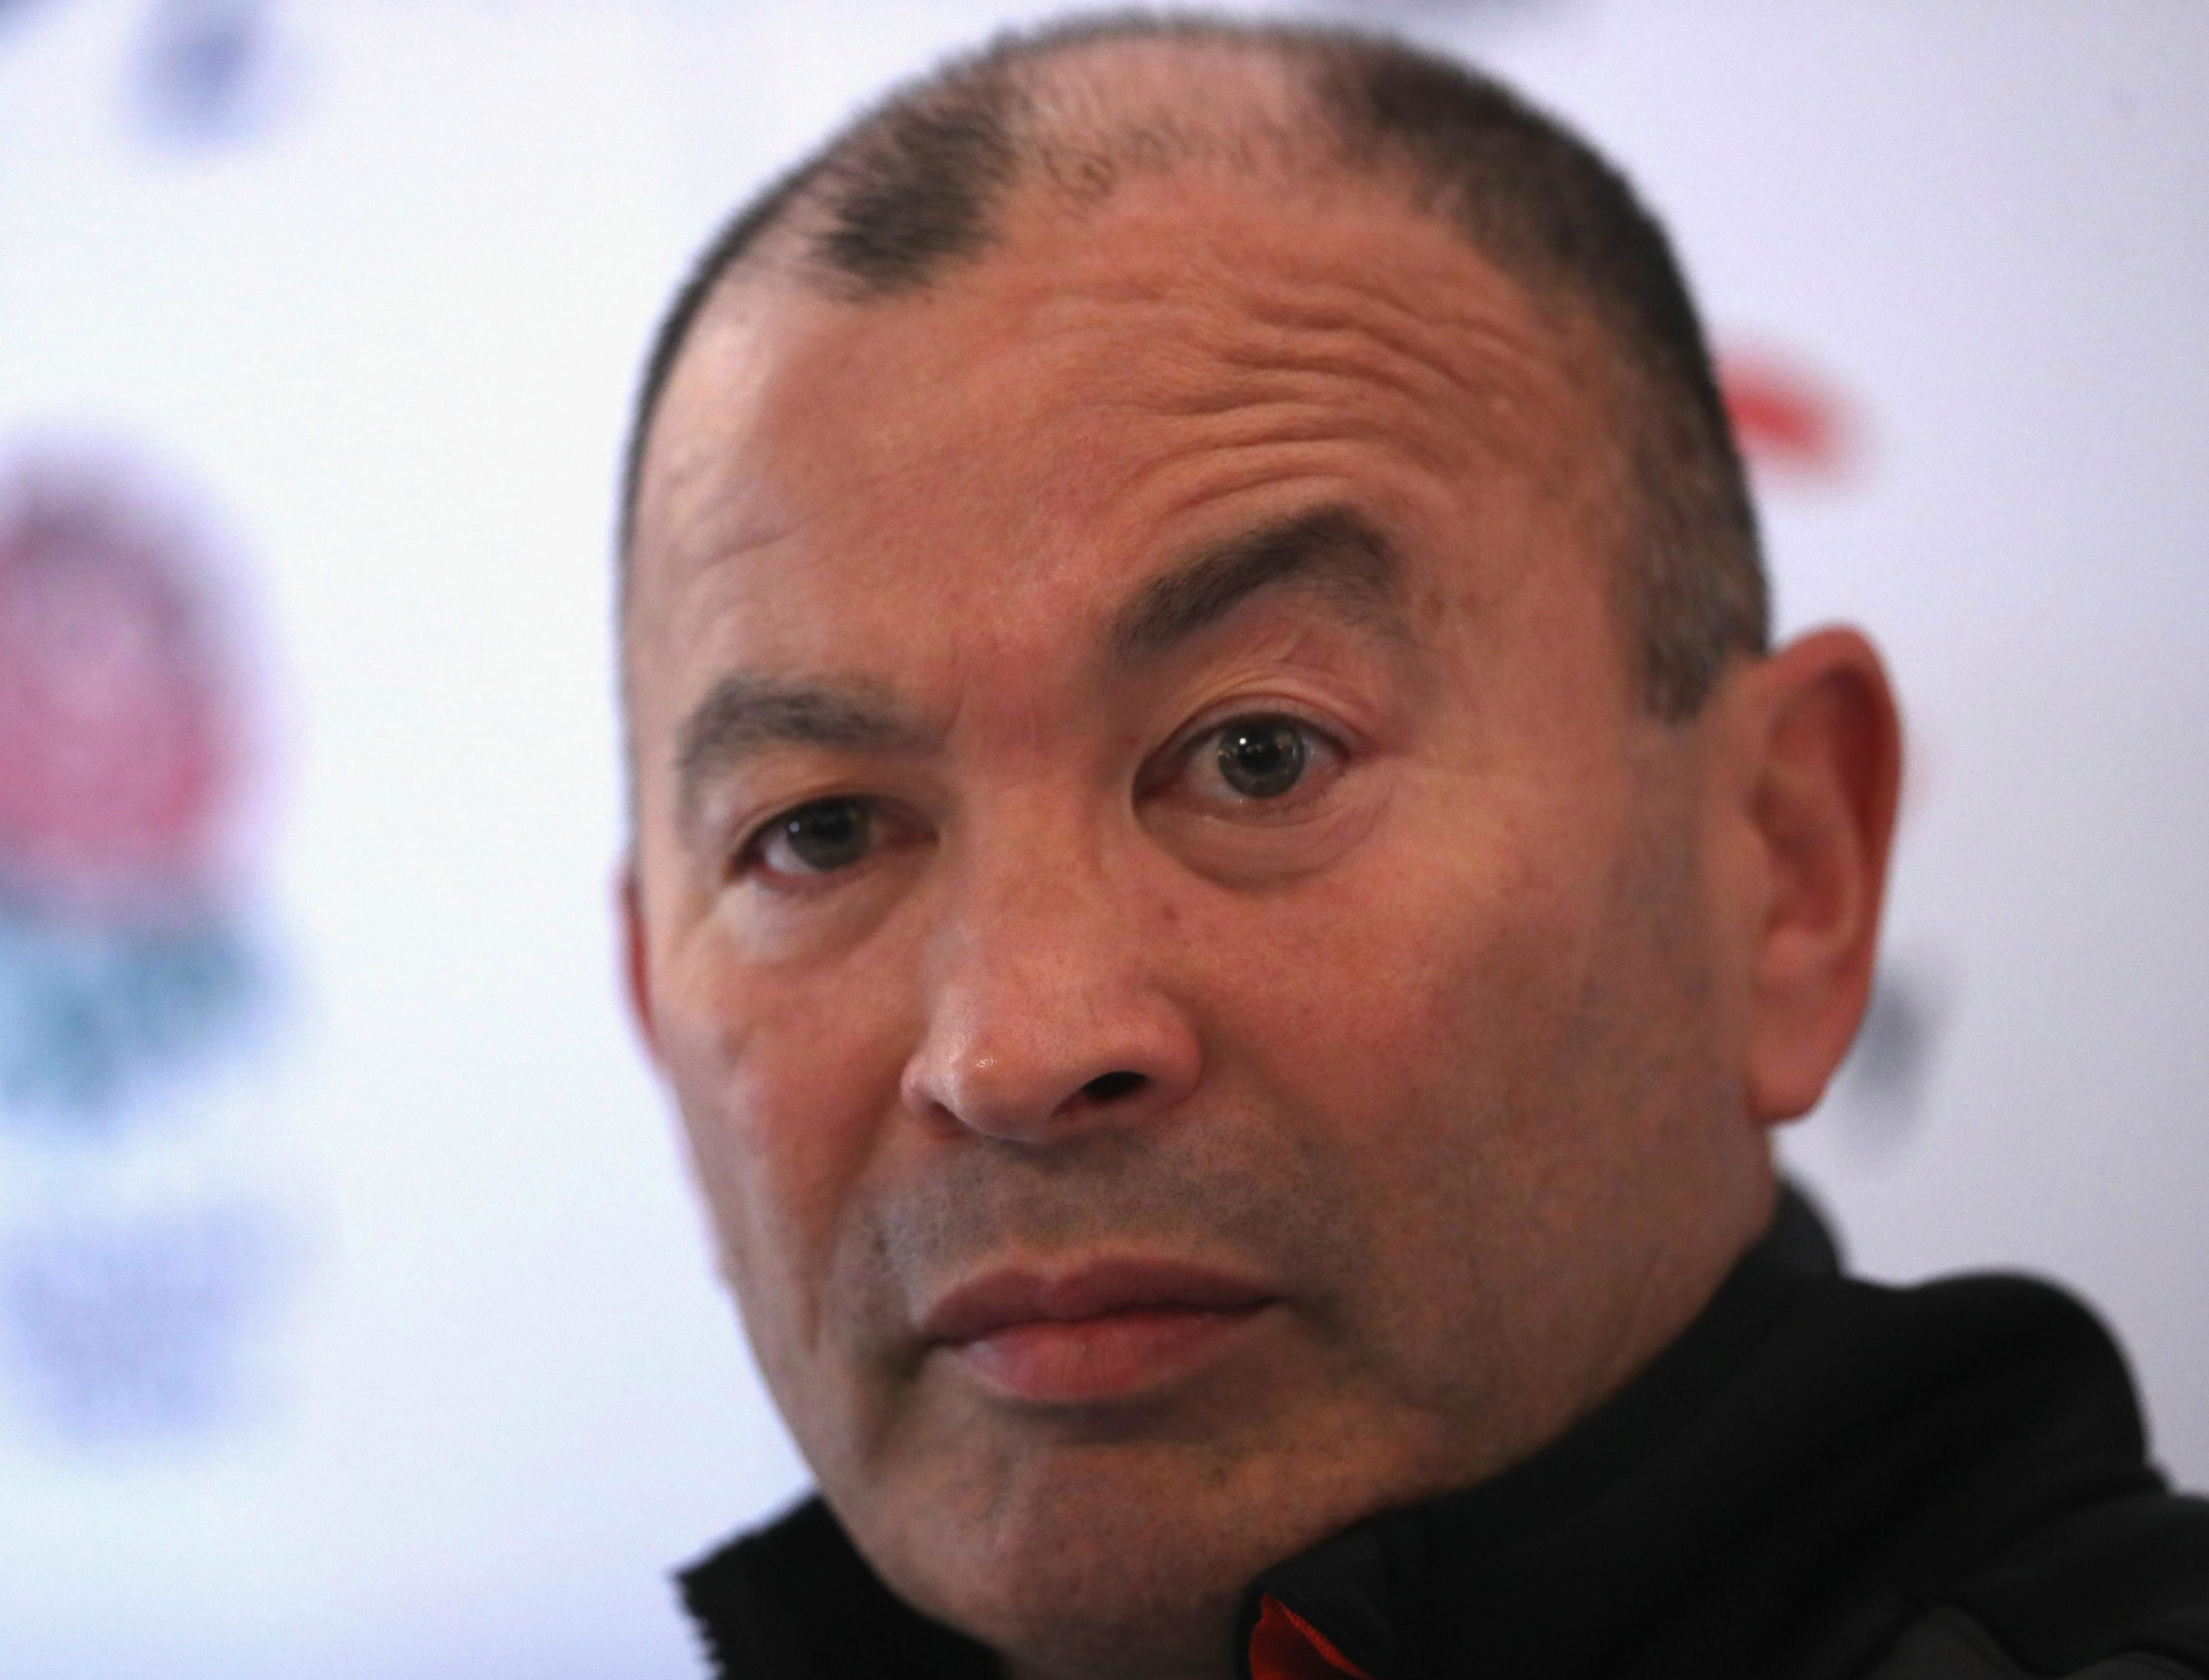 Eddie Jones faced abuse over his appearance